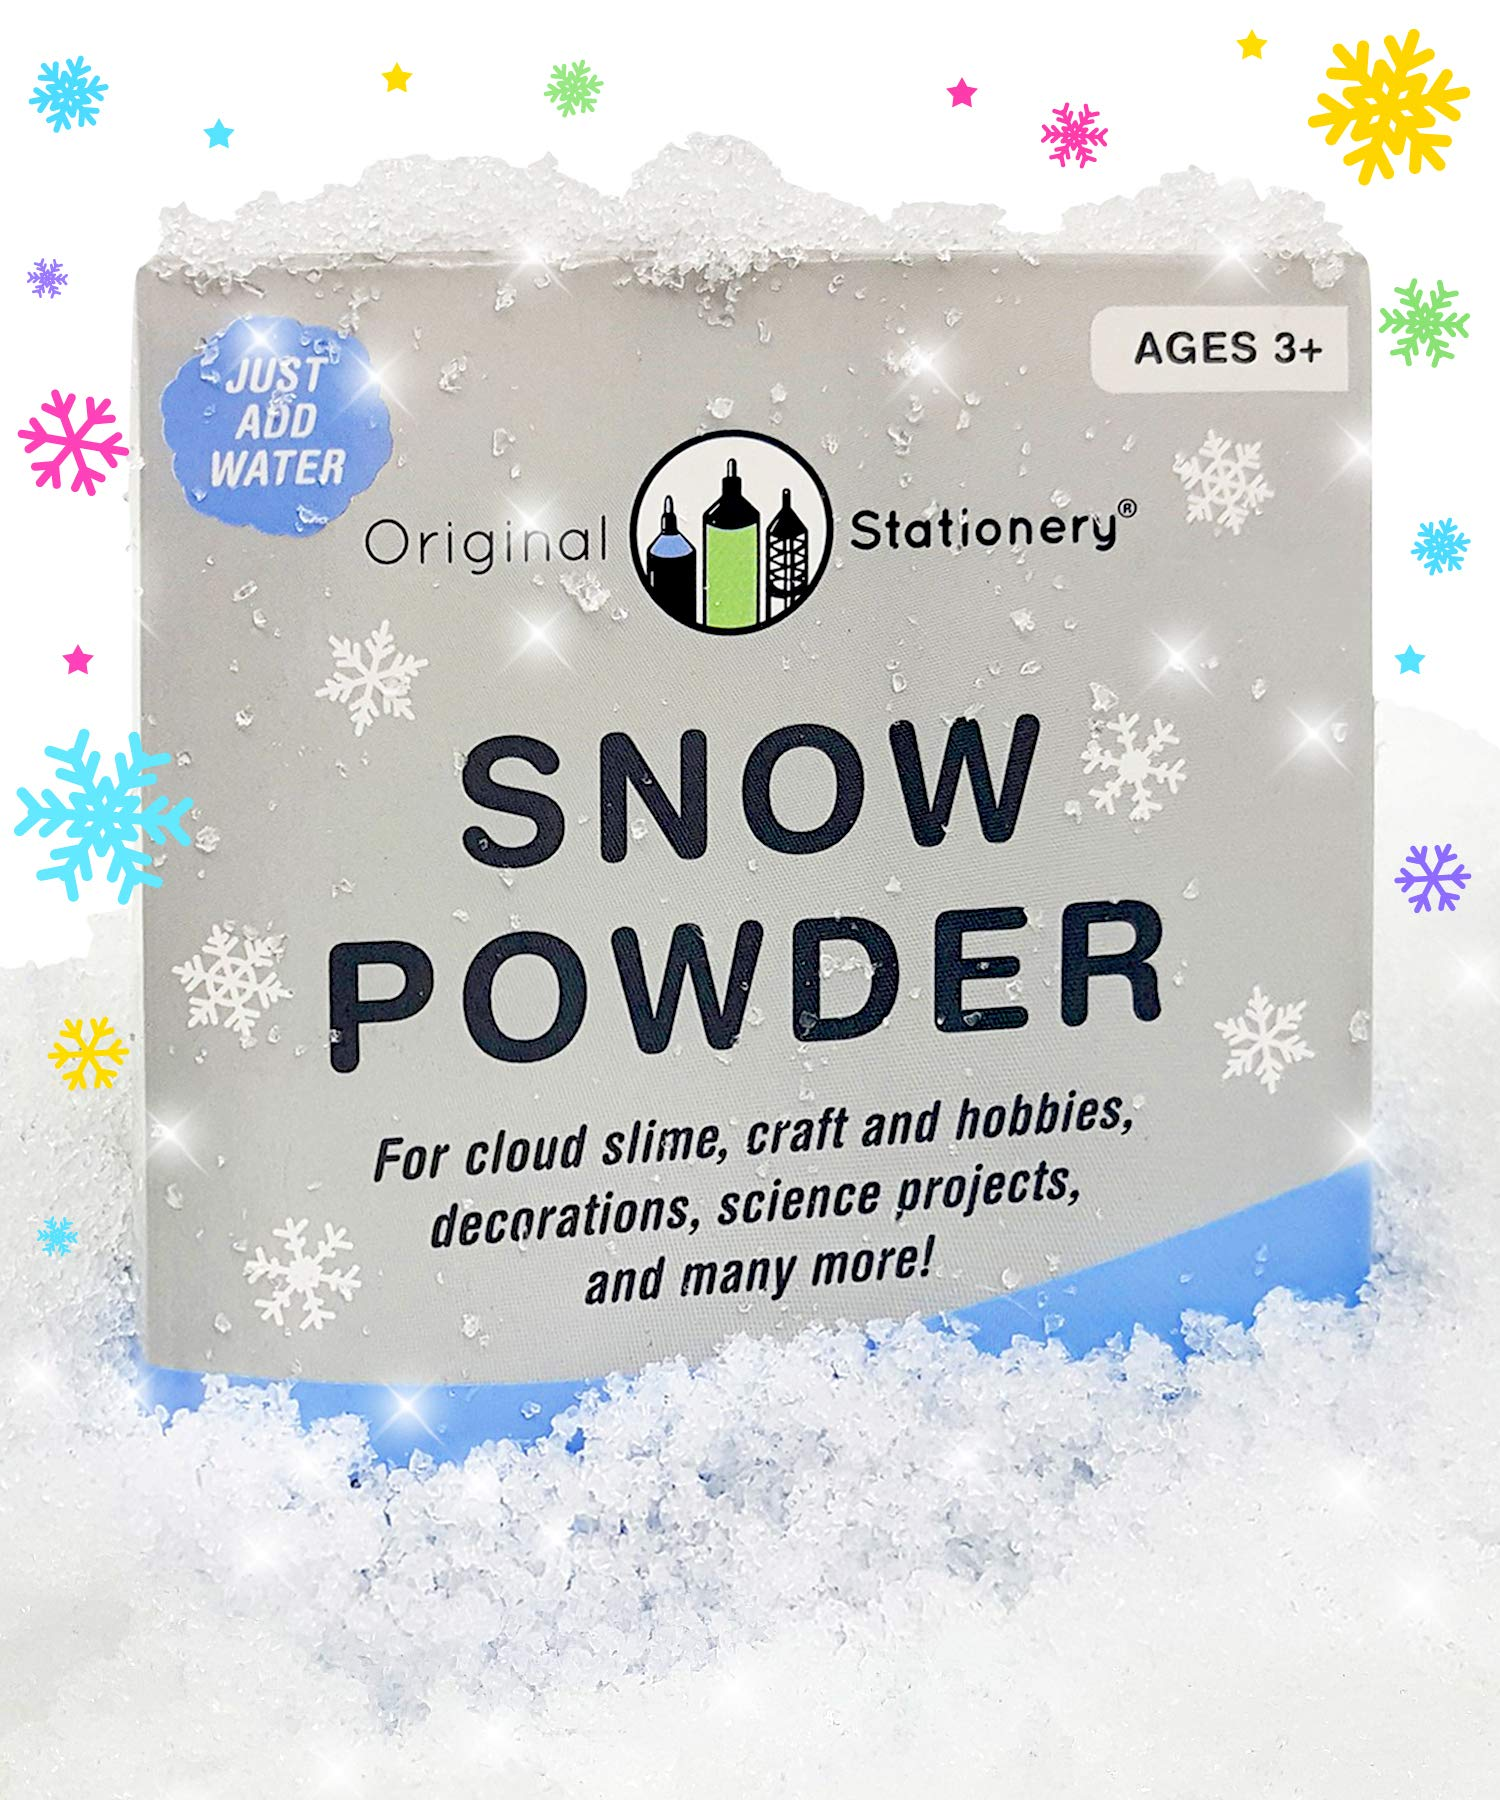 Original Stationery Product Name Instant Snow Powder [2 gallons] Creates Slushie Fake Snow. Use with Slime, Daiso Clay and Floam Beads to Make Cloud Slime - Artificial Snow Decoration